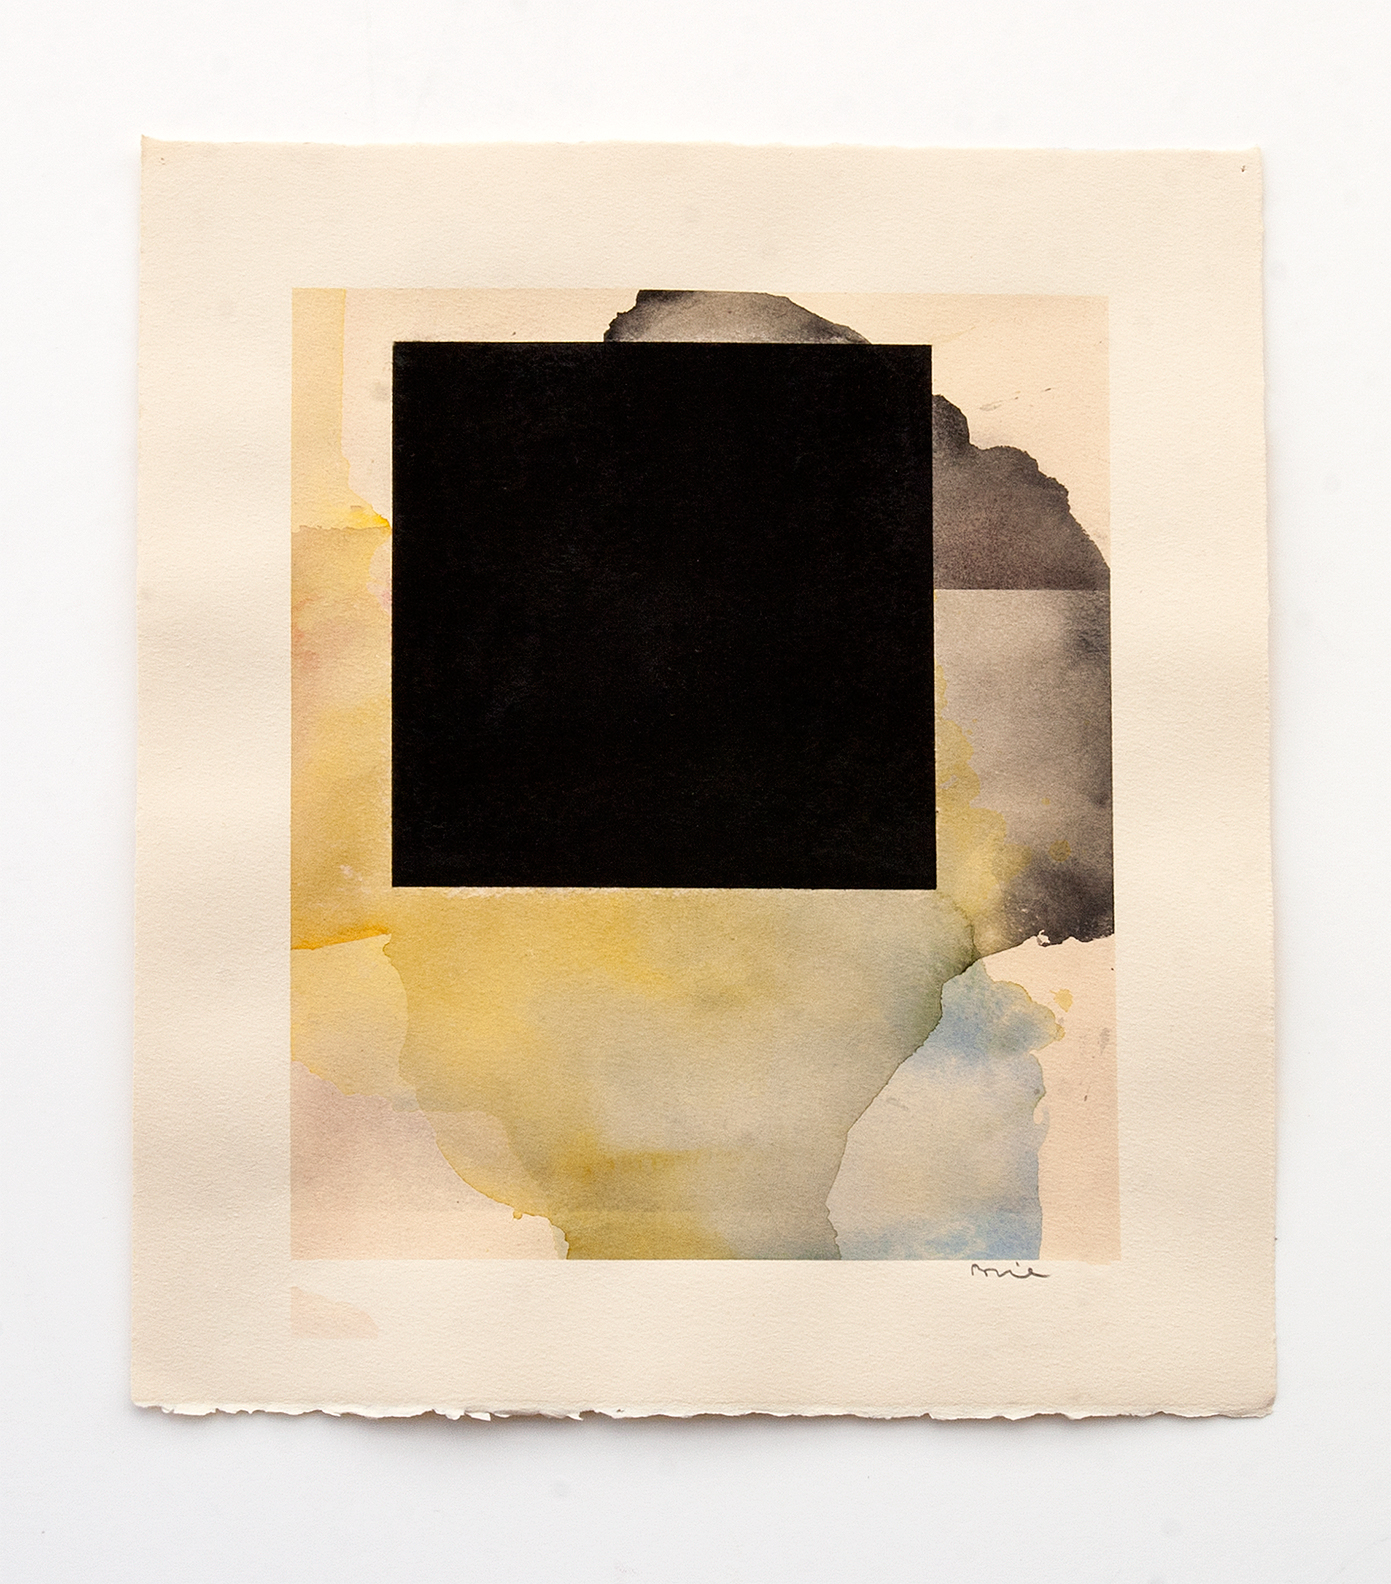 DANIEL BRICE, Untitled, 2015, charcoal, watercolor on paper, 17 x 15 inches